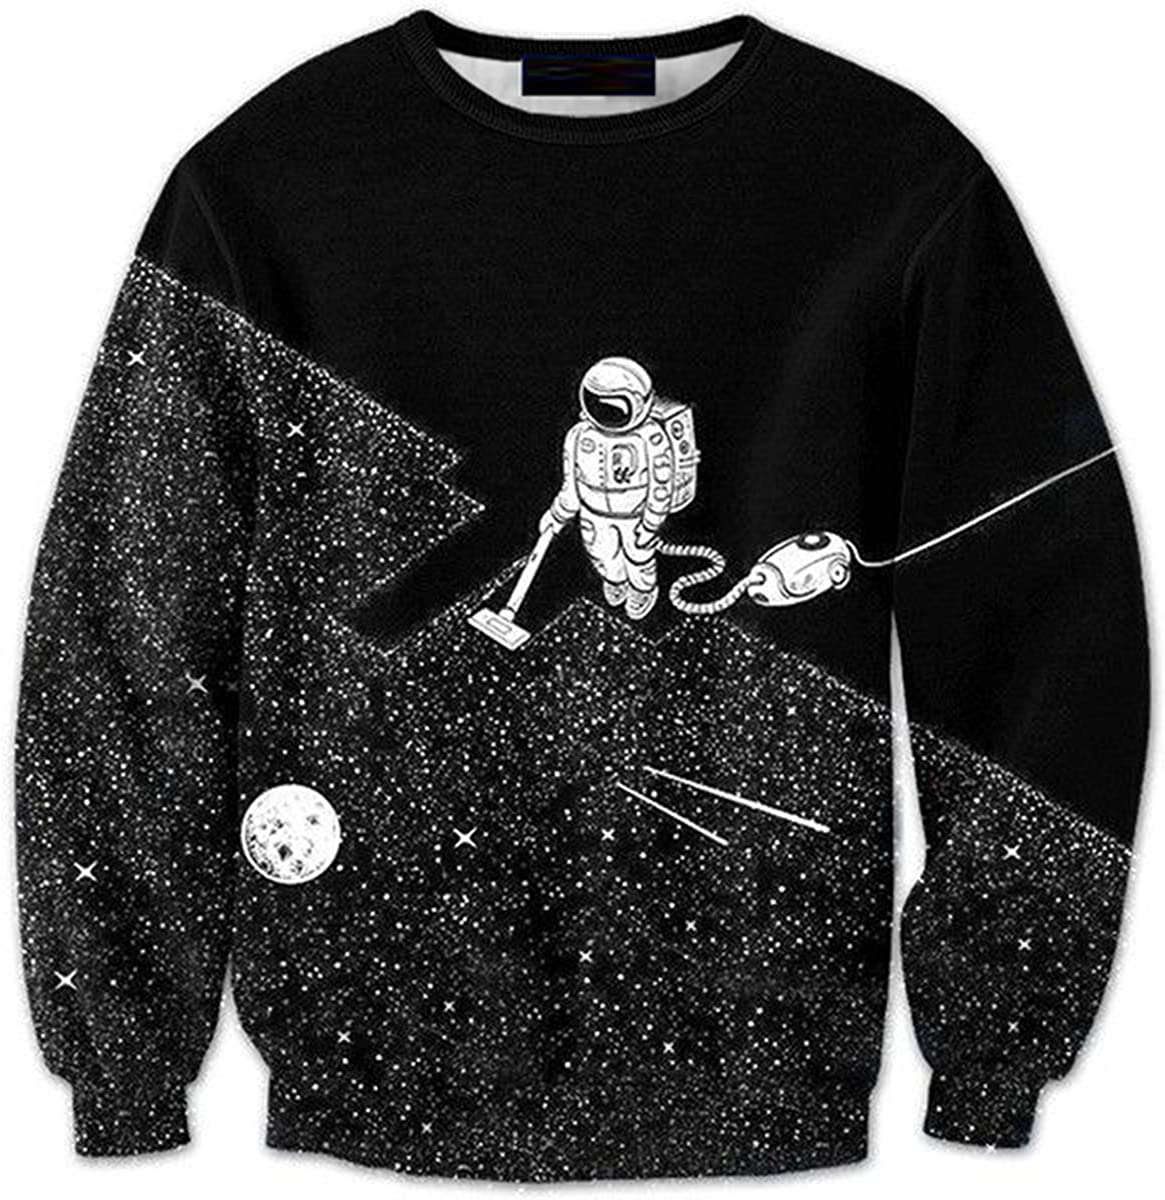 CORIRESHA Coli&Tori Black 3D Outer Space Astronaut Print Long Sleeve Pullover Sweatshirt